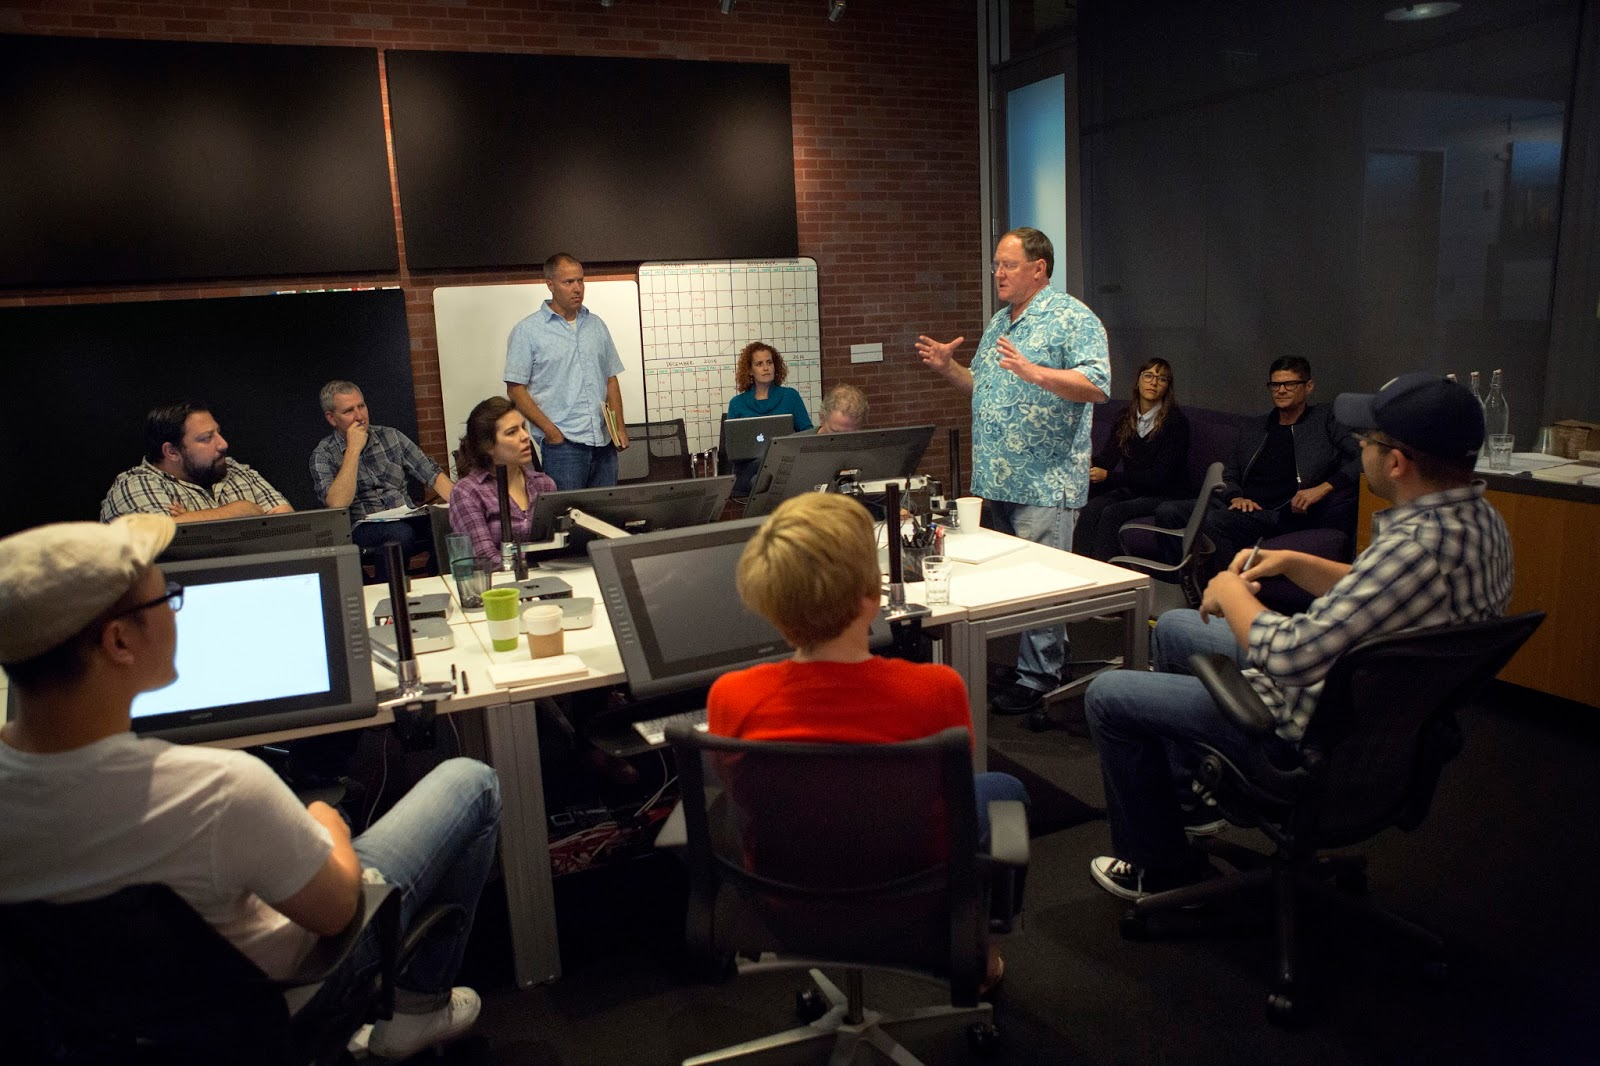 Director John Lasseter Toy Story 4 release on June 16, 2017. (Photo by Deborah Coleman / Pixar)